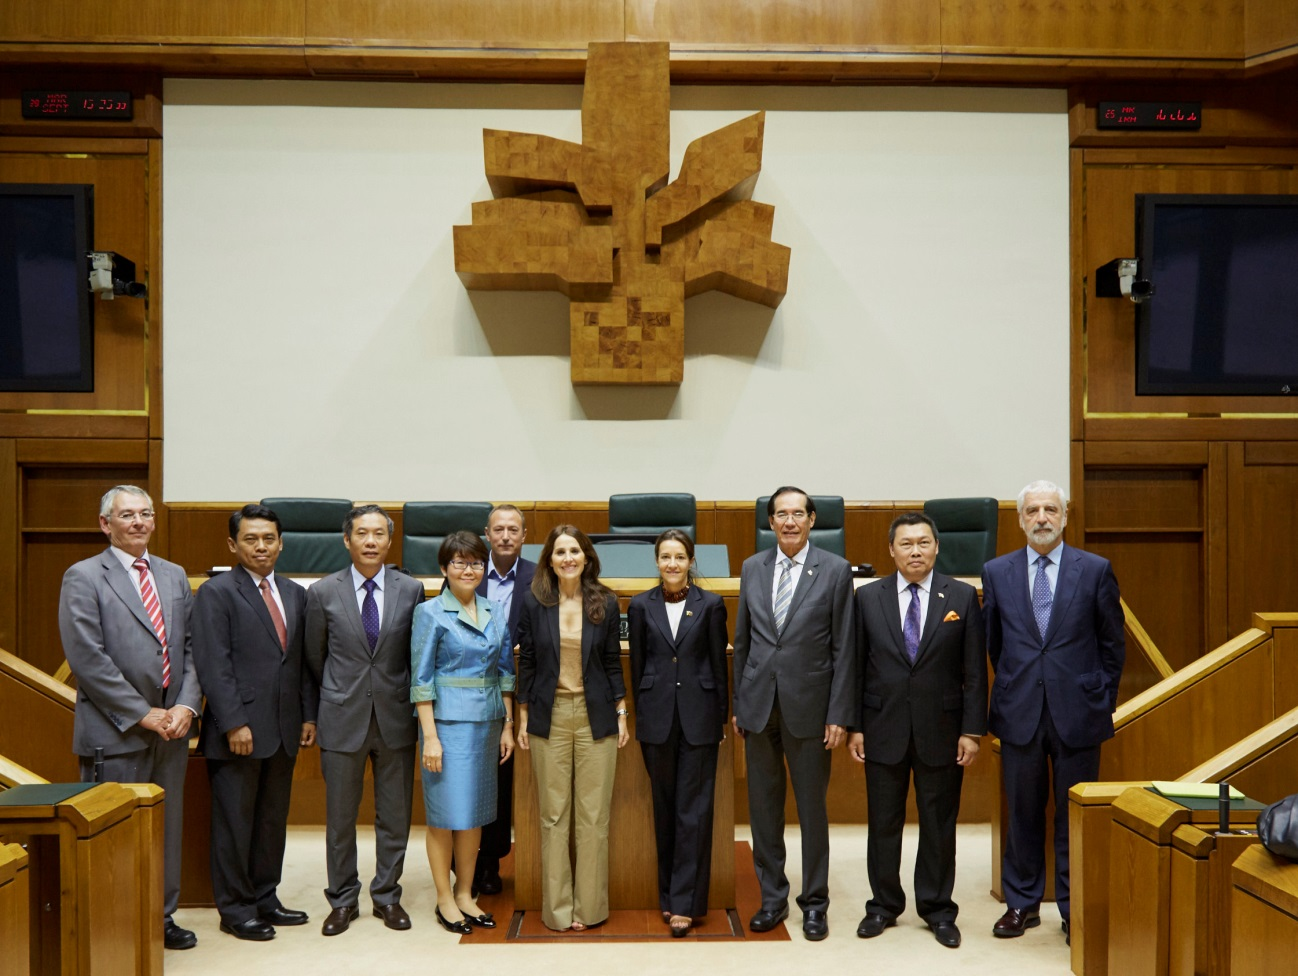 Pres. Barkatxo Tejerina of the Basque Parliament (fifth from right) with the ASEAN Ambassadors, the Philippie Honorary Consul in Bilbao and Basque parliamentarians. Photos courtesy of Eusko Legebiltzarra.